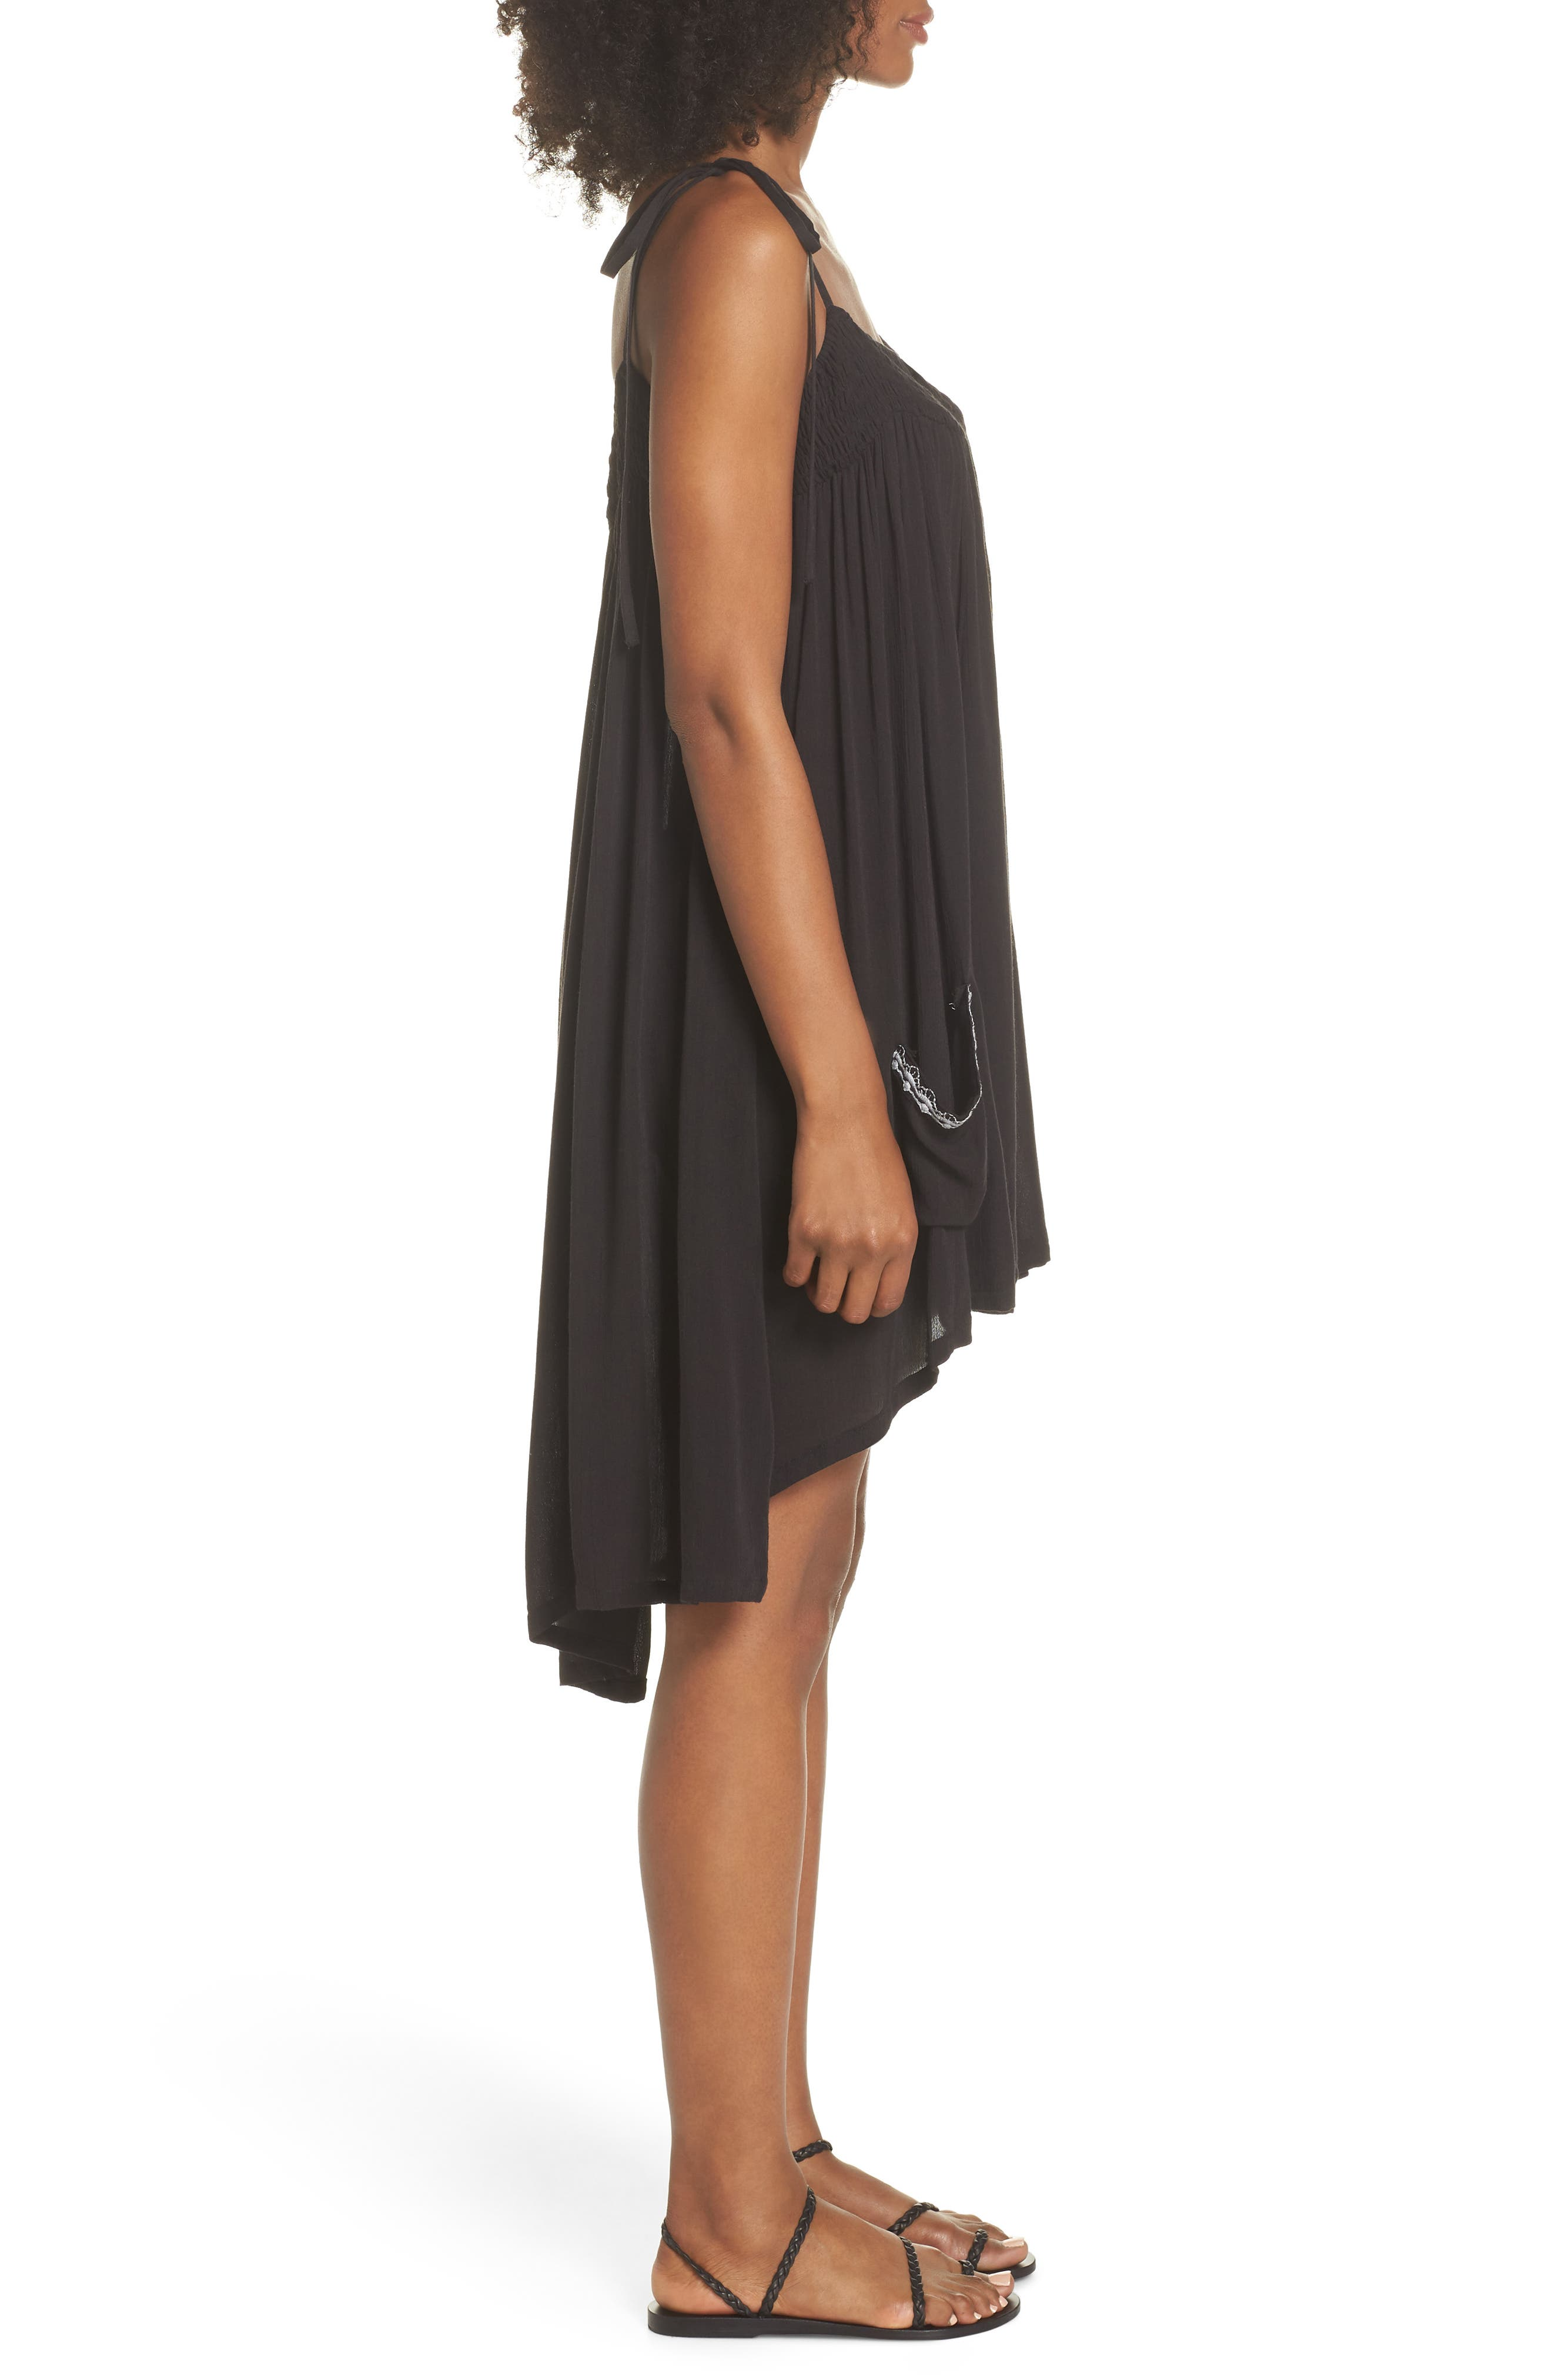 Olivia Cover-Up Dress,                             Alternate thumbnail 2, color,                             BLACK/ SILVER